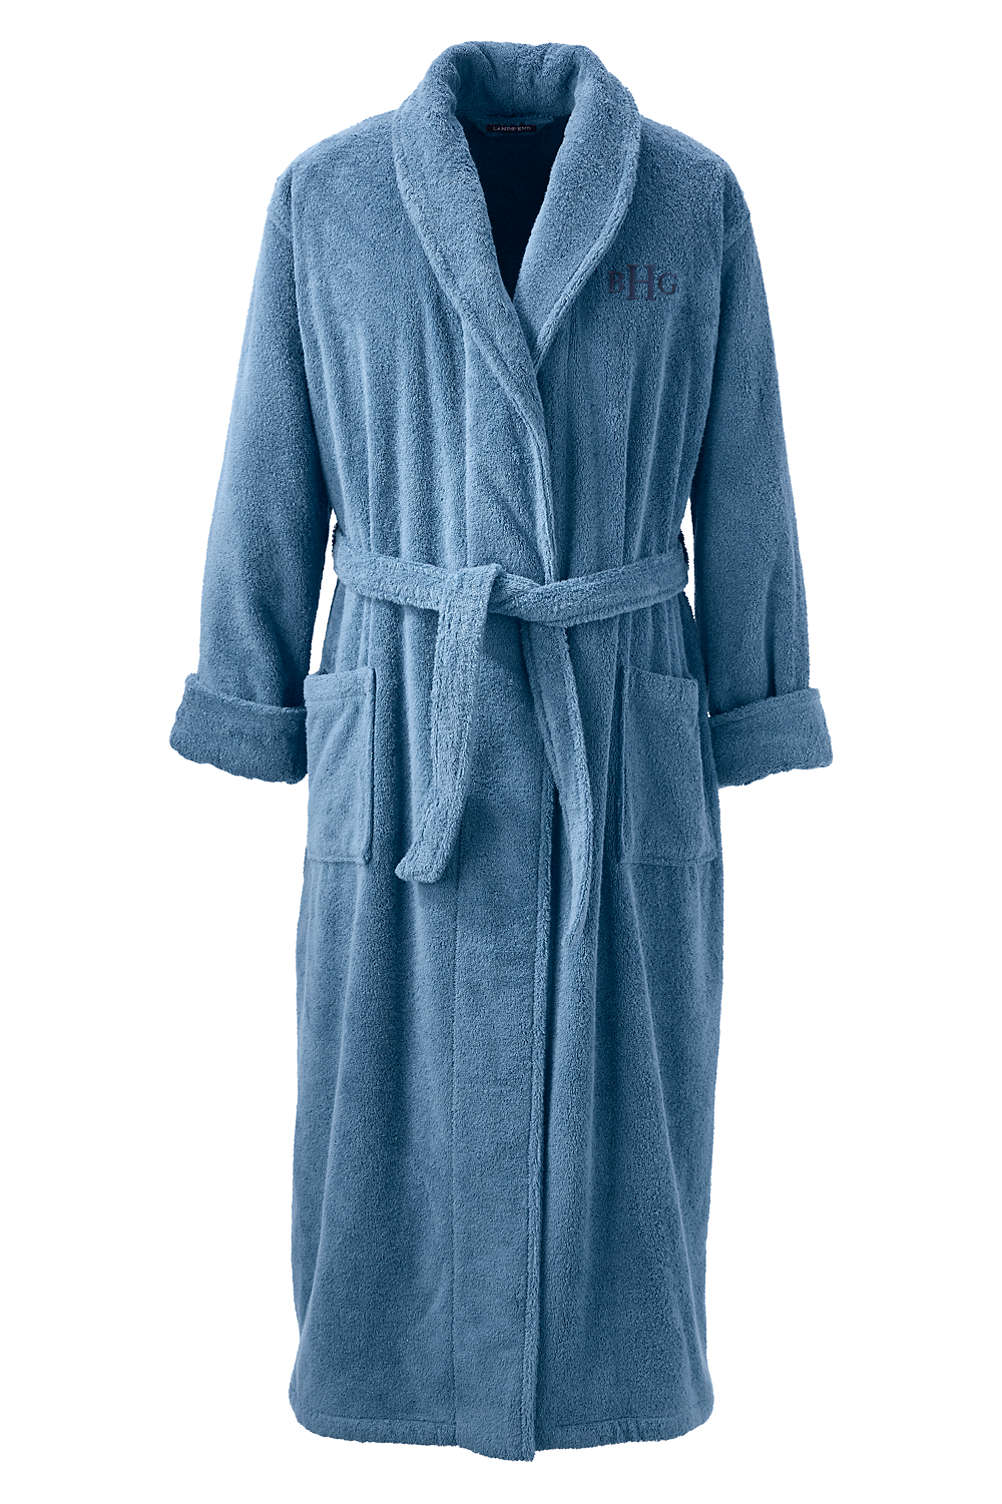 5c1fdf81b5810 Men's Full Length Turkish Terry Robe from Lands' End